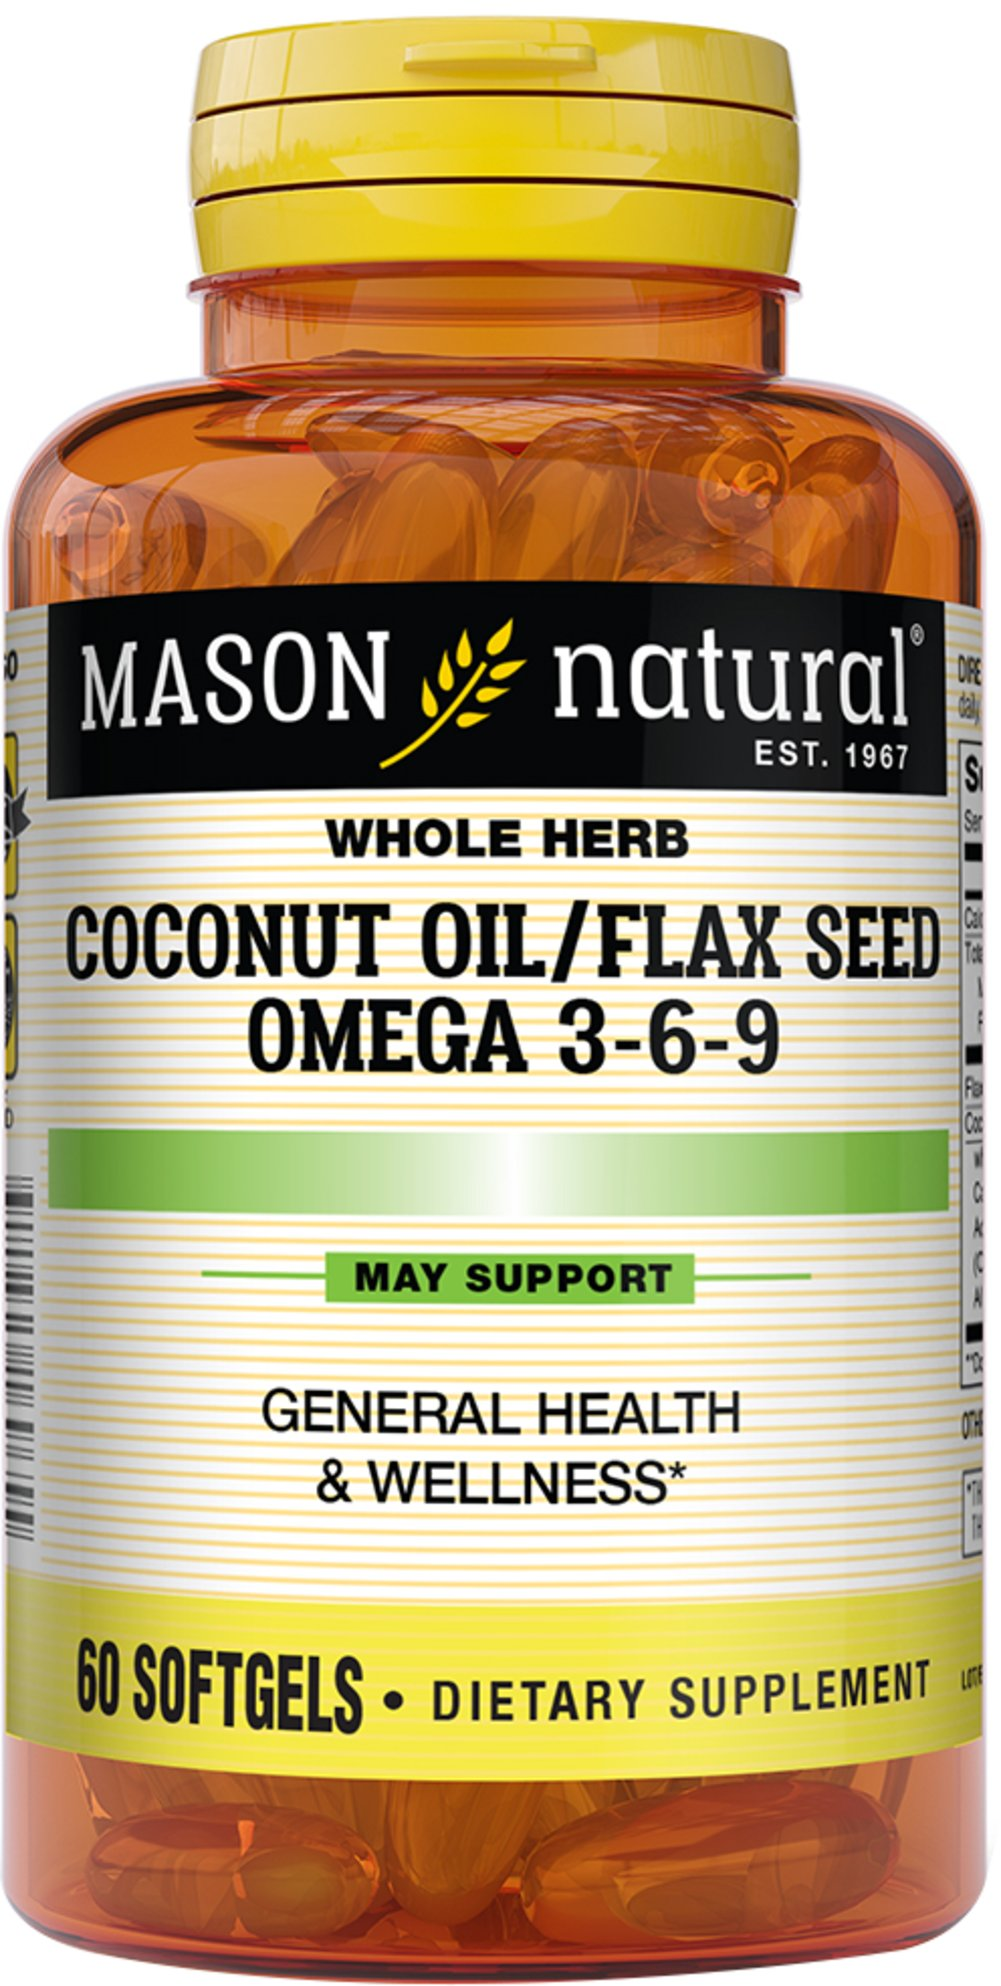 Coconut Oil & Flax Seed 500/500mg <p><strong>From the Manufacturer's Label:</strong></p><p>Essential Fatty Acids from a Vegetable Source</p><p>Manufactured by Mason Naturals</p><p></p> 60 Softgels  $6.99